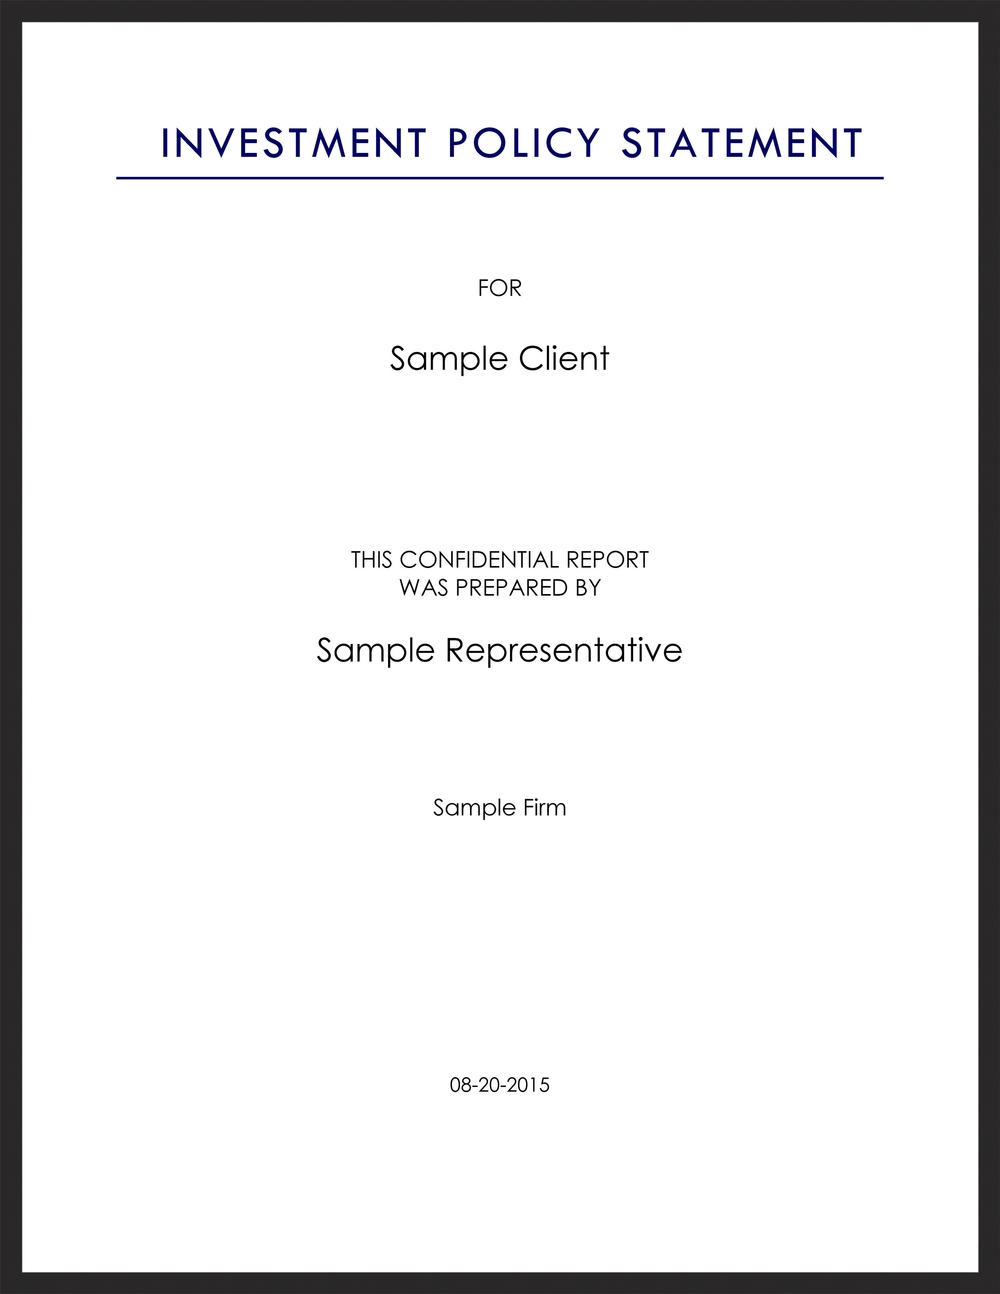 Saratogasharp investment management proposal saratoga capital sample investment policy statement coverg altavistaventures